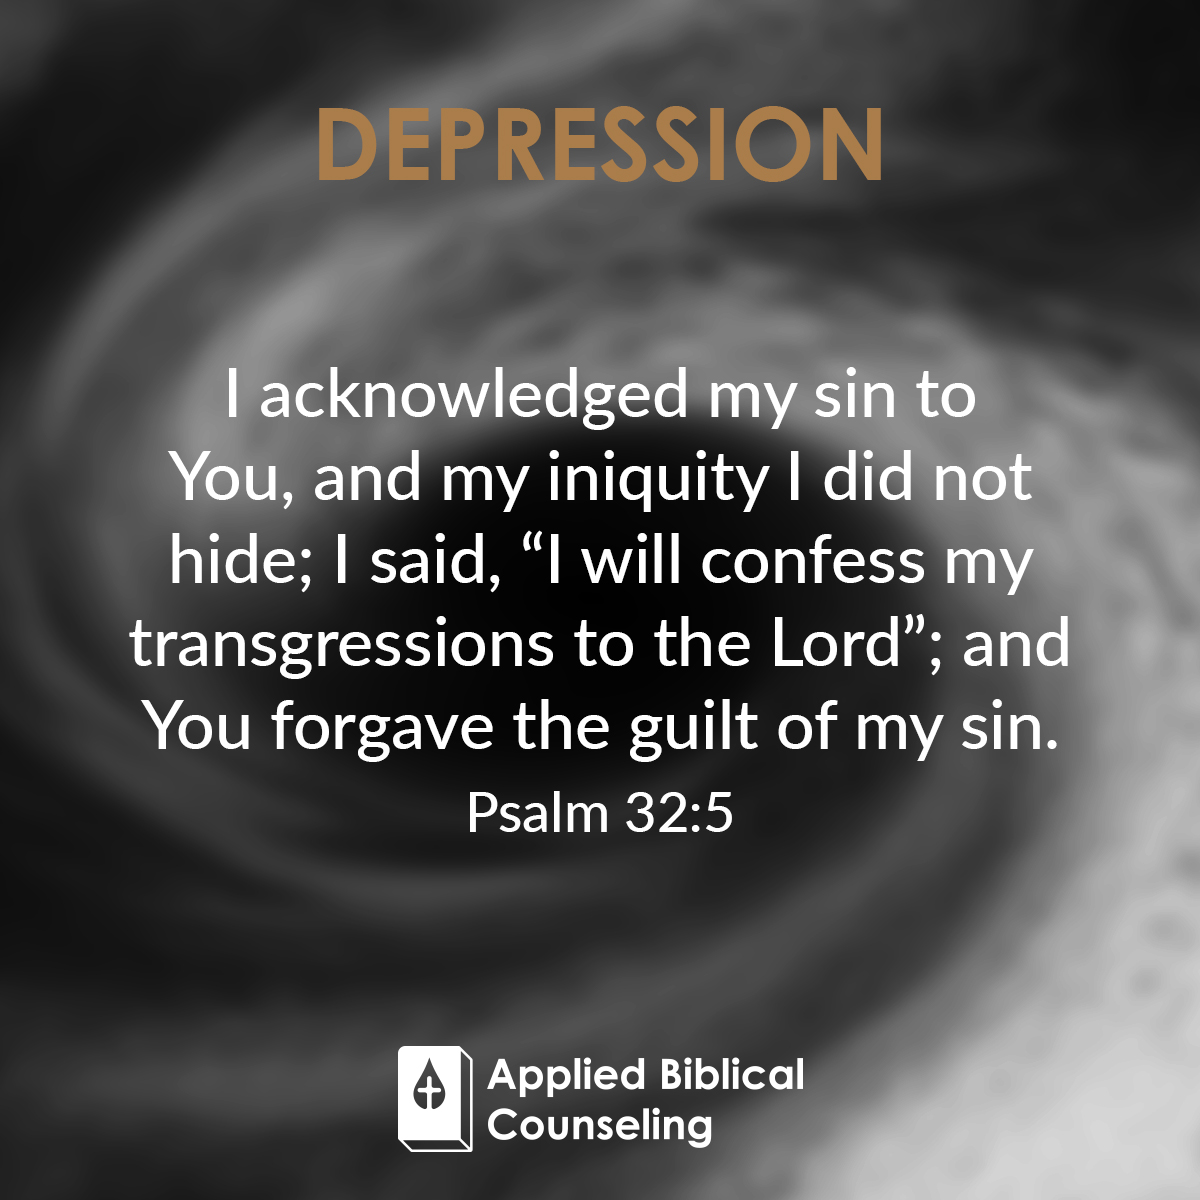 Applied Biblical Counseling Facebook w27 Depression 5